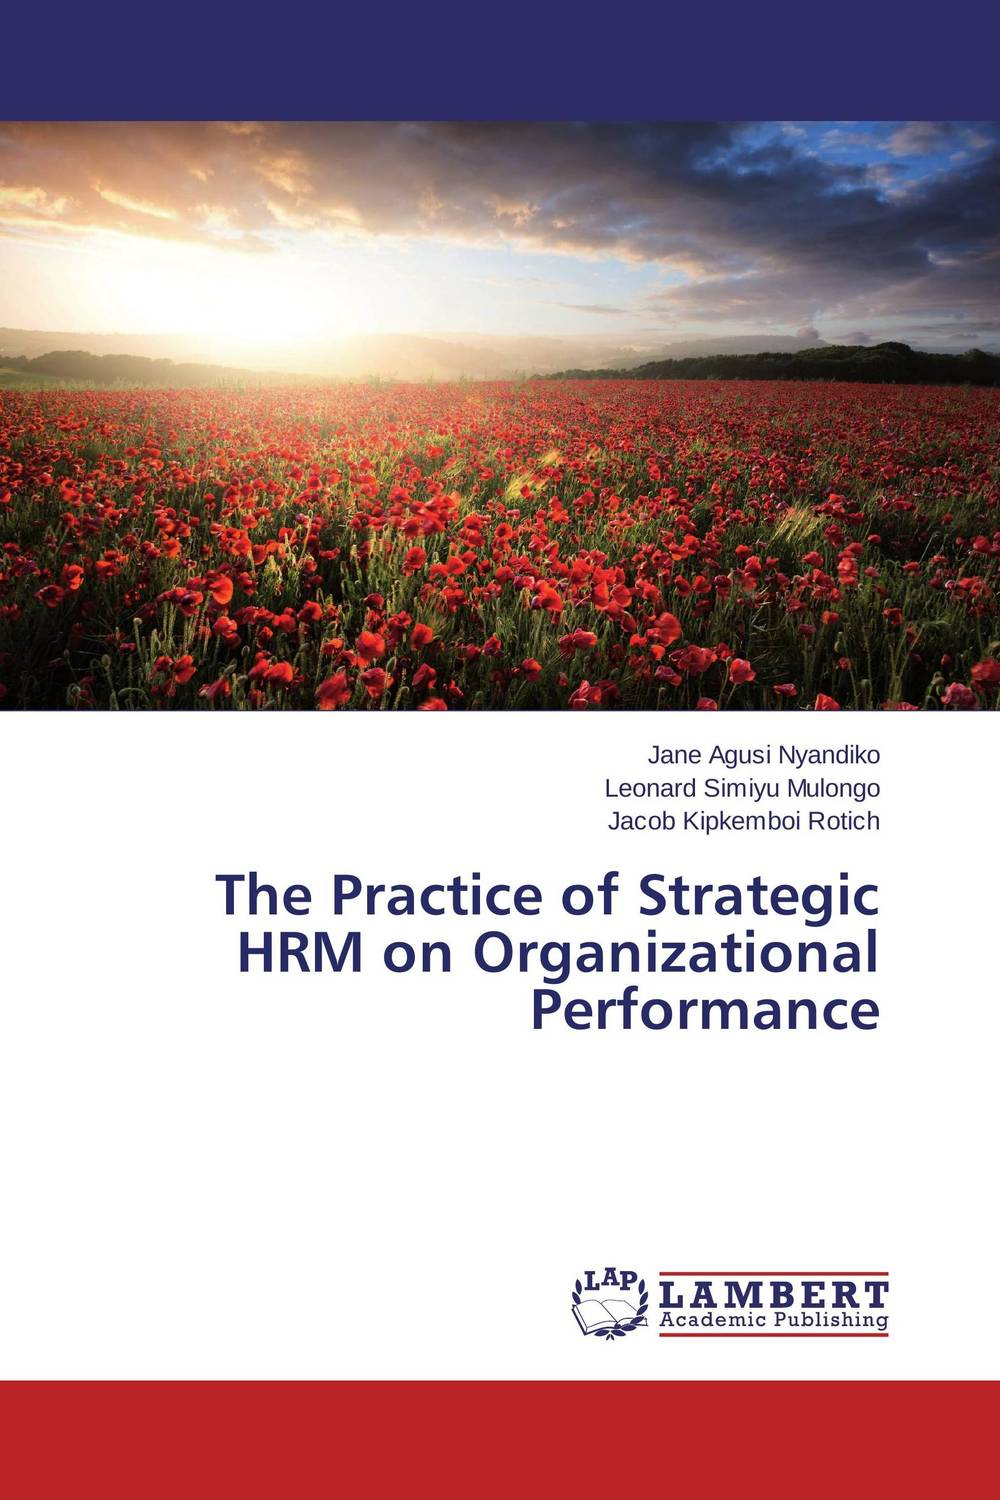 The Practice of Strategic HRM on Organizational Performance spirituals and gospel music performance practice